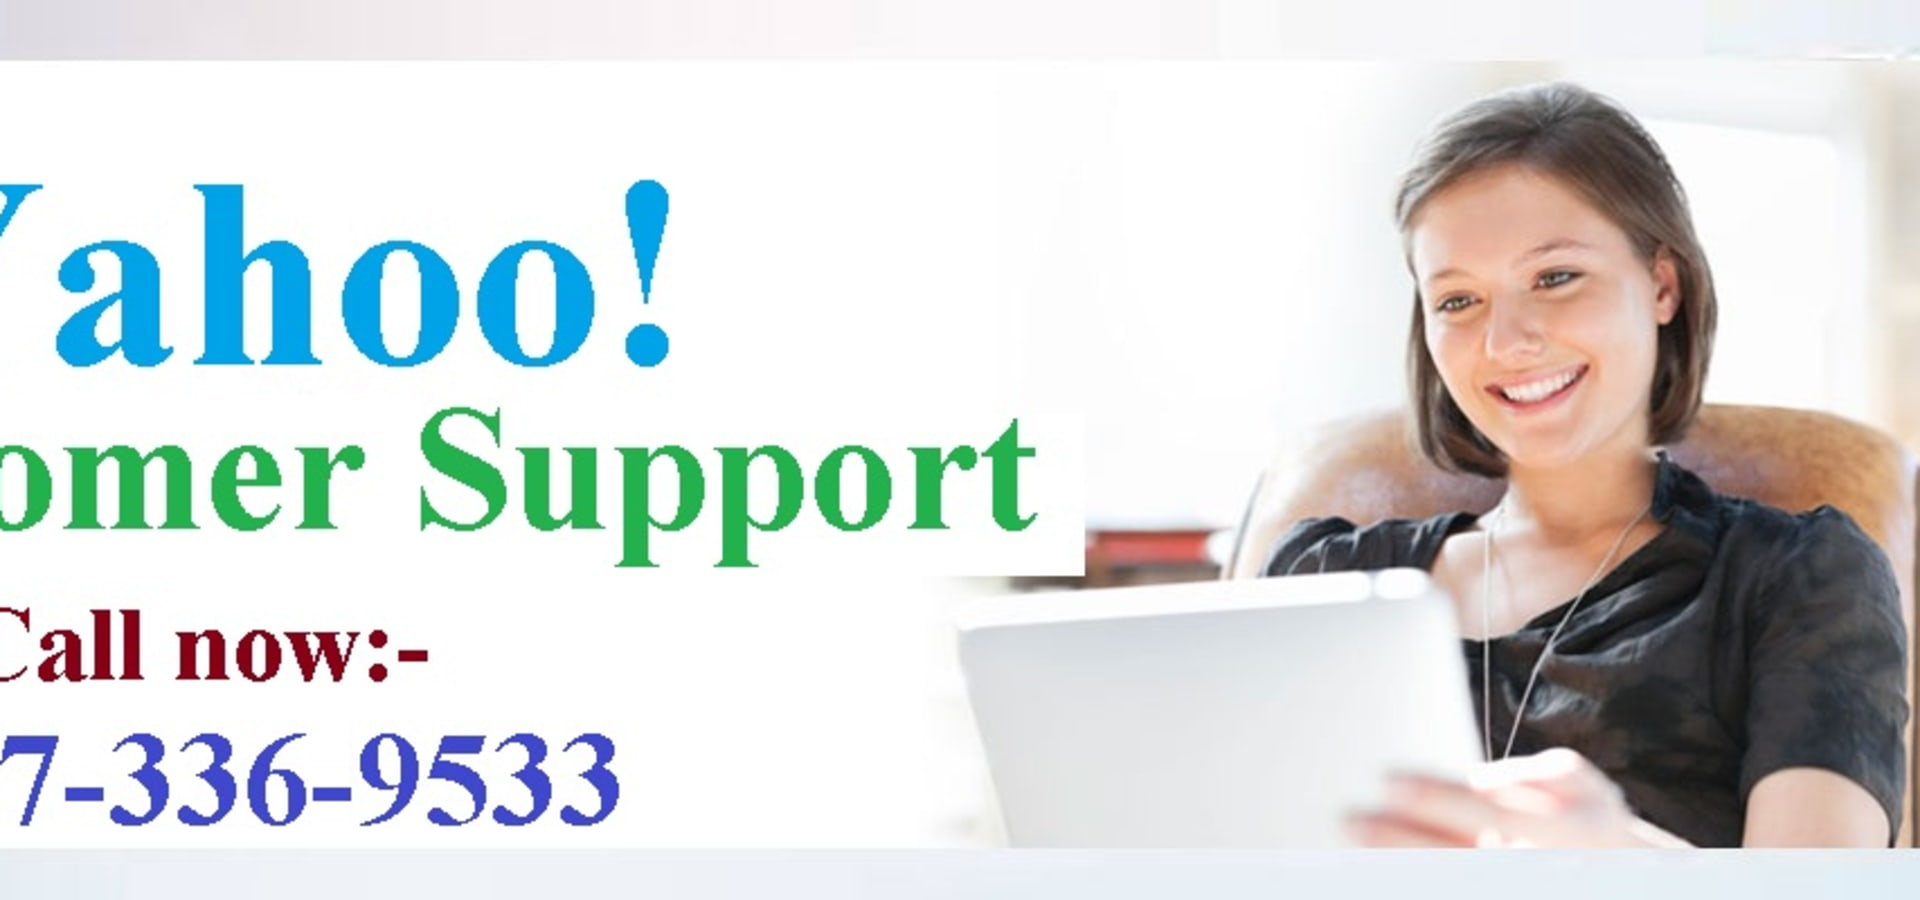 Yahoo Customer Support Number USA 1-877-336-9533